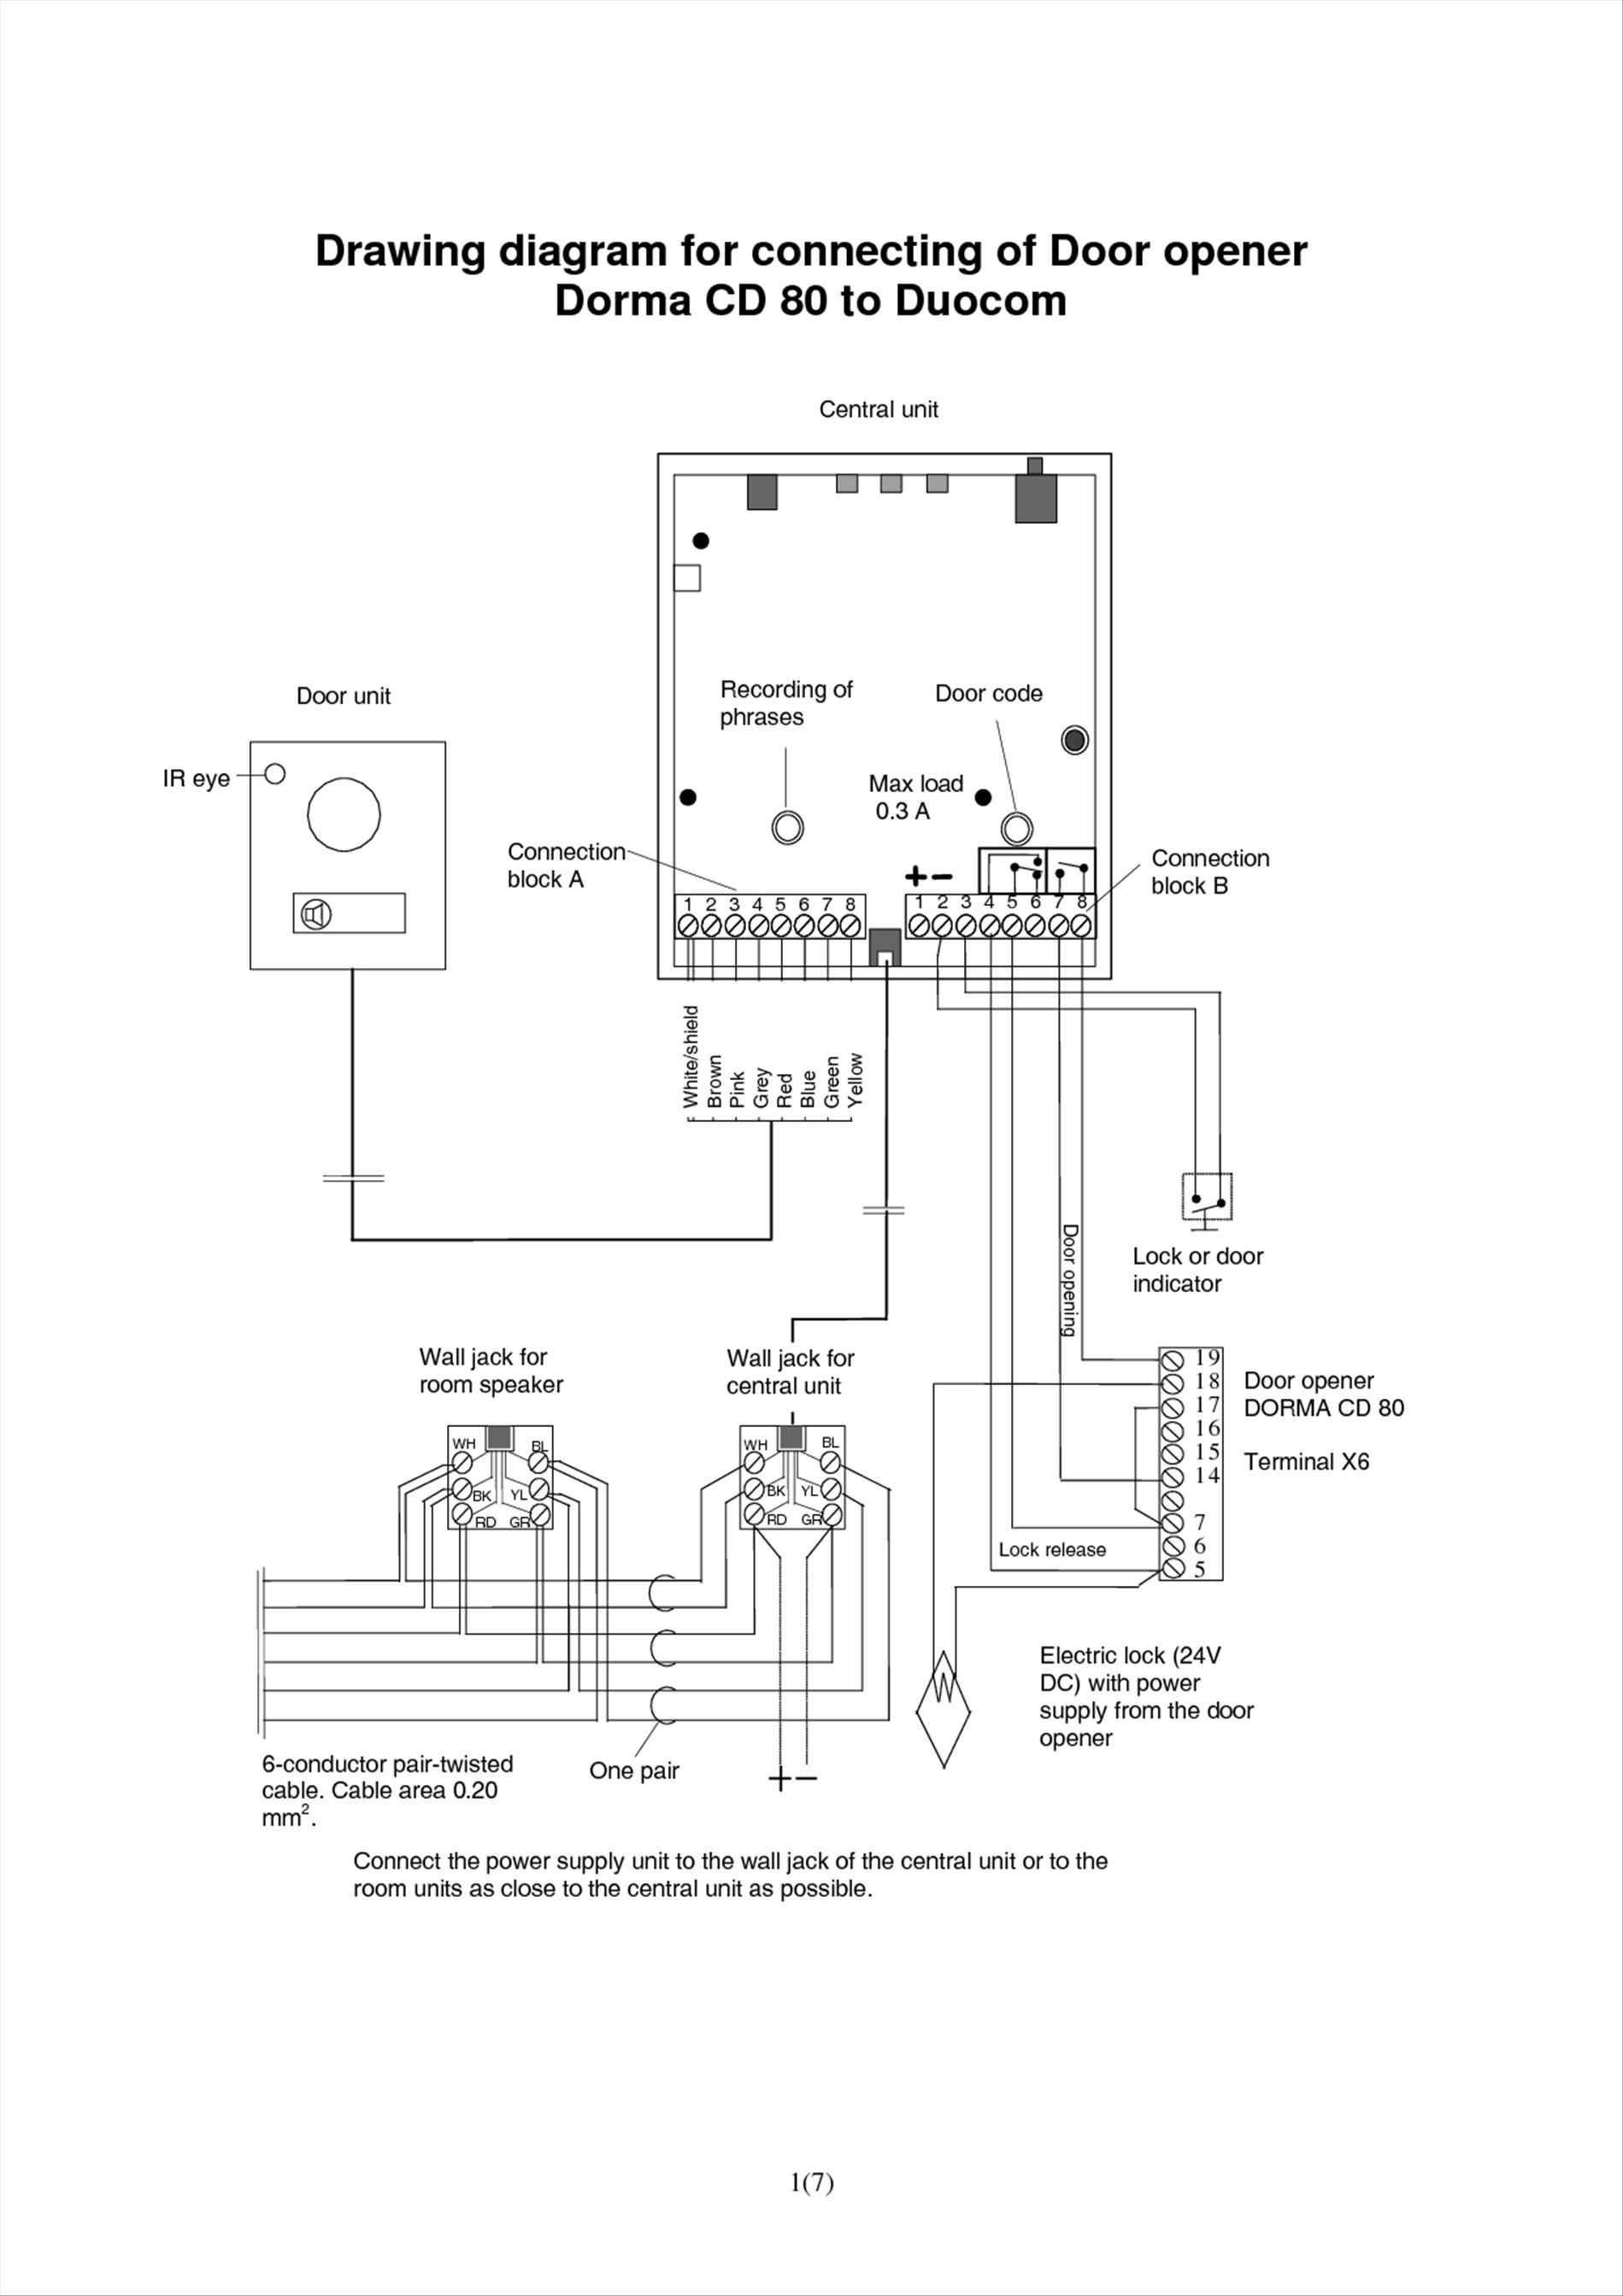 Paper Shredder Wiring Diagram Page 3 And Schematics Nfs 320 Garage Door Sensor Connectors Free Diagrams Rh Abetter Pw